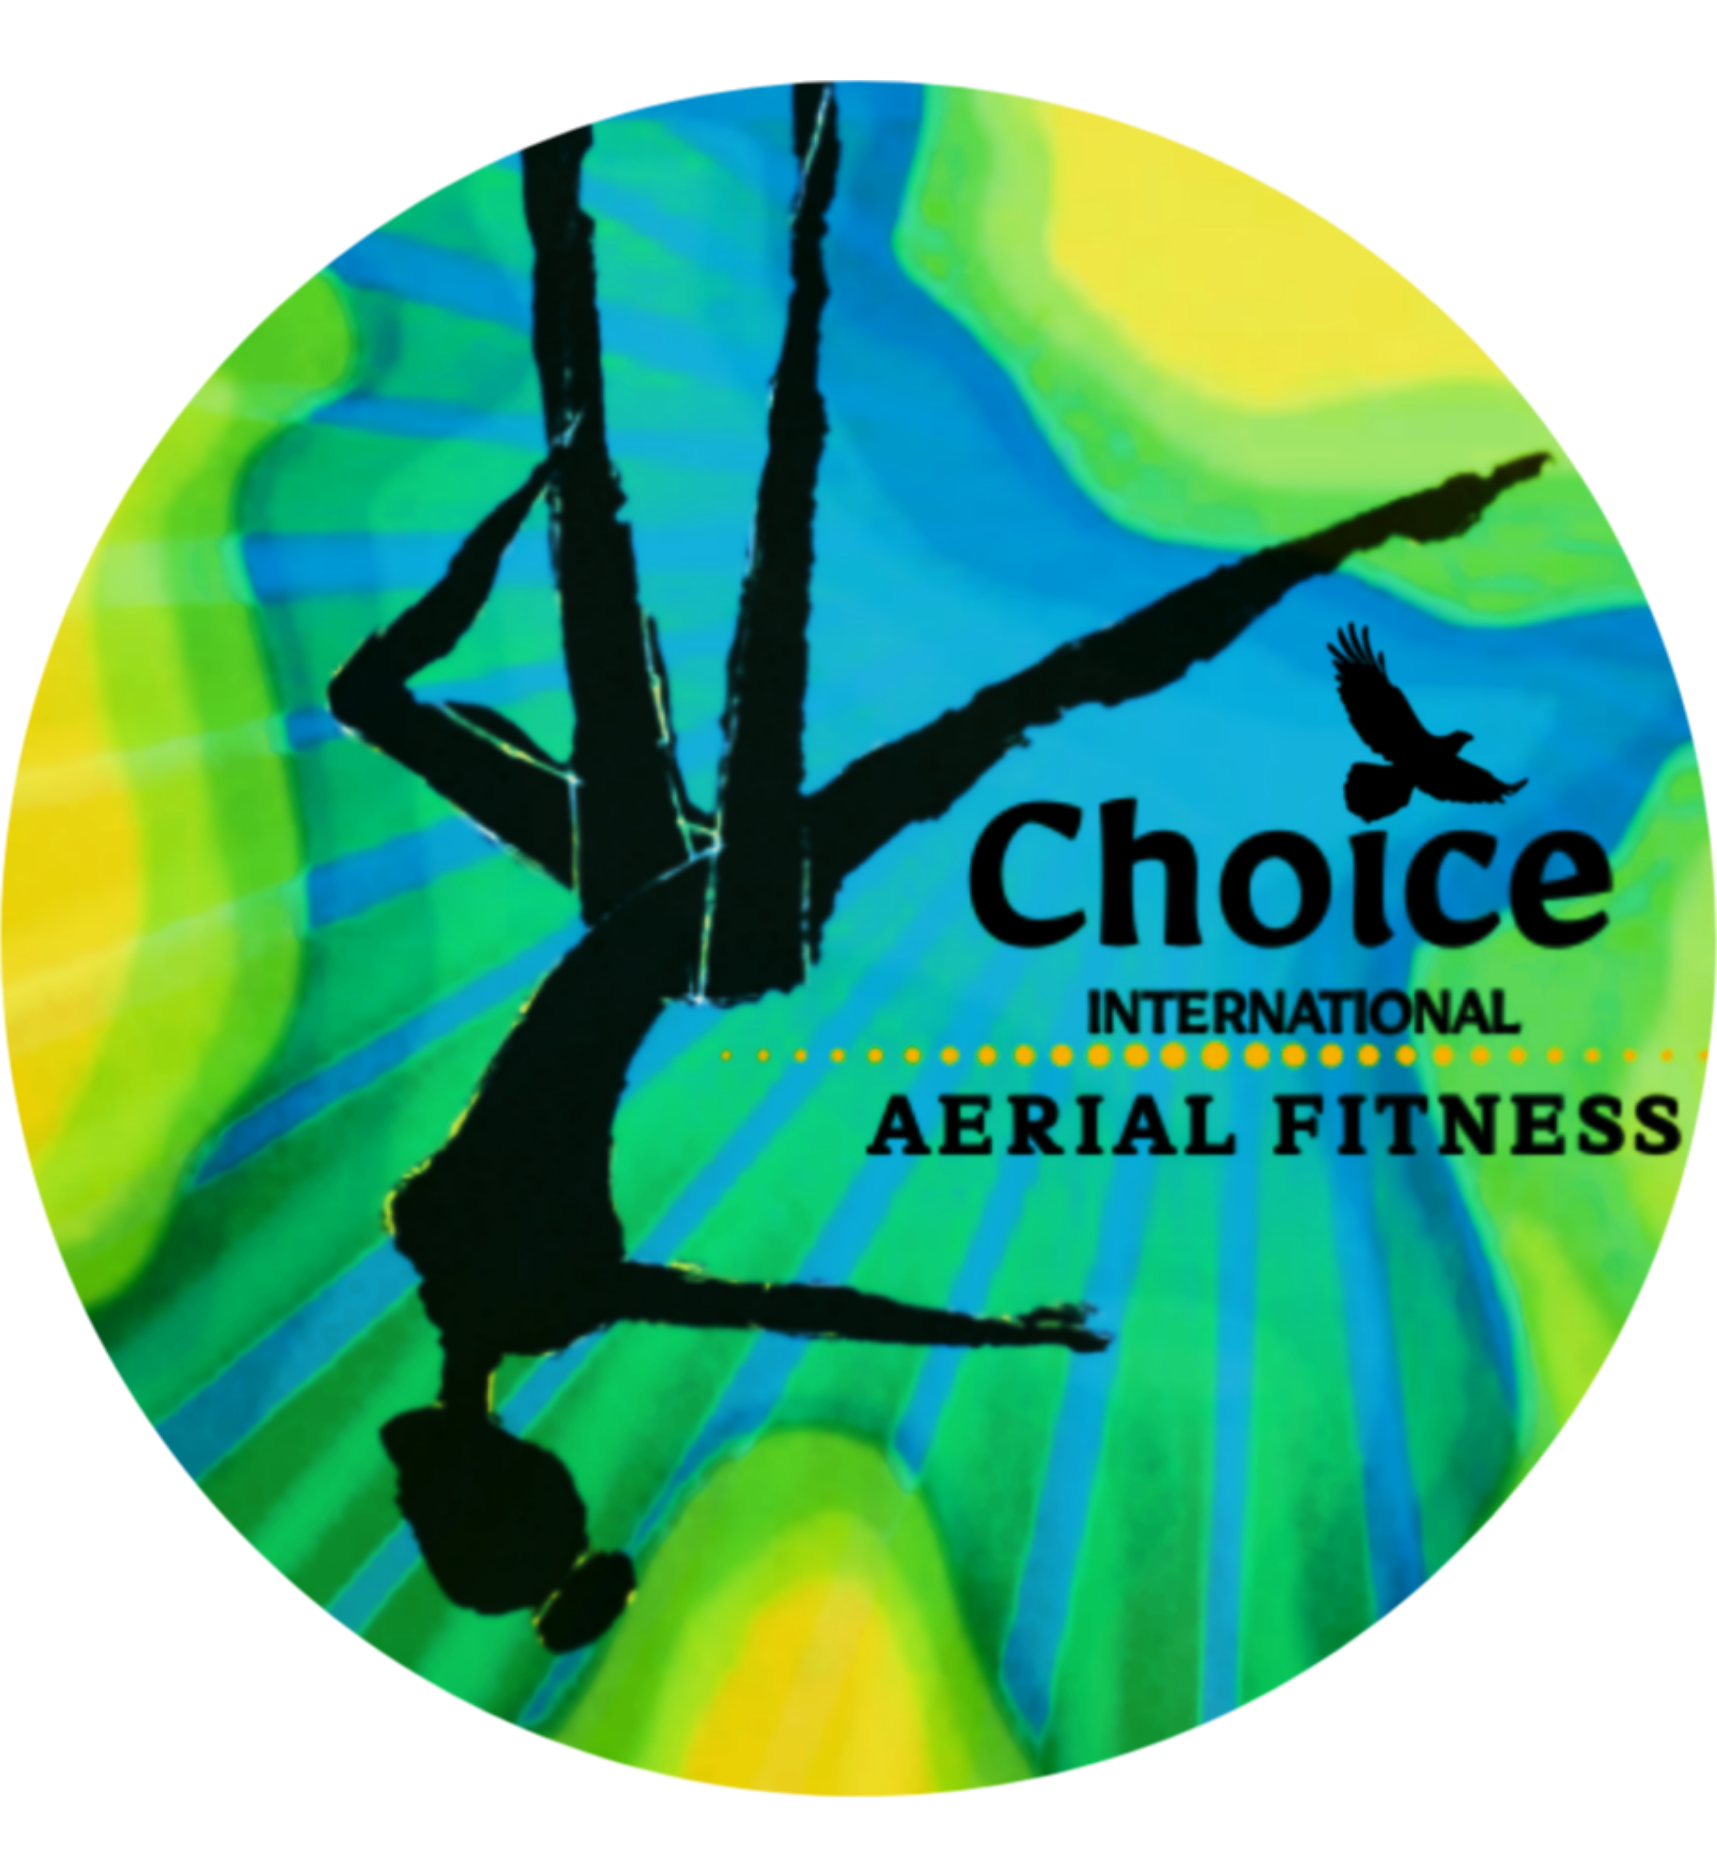 Choice International Aerial Fitness